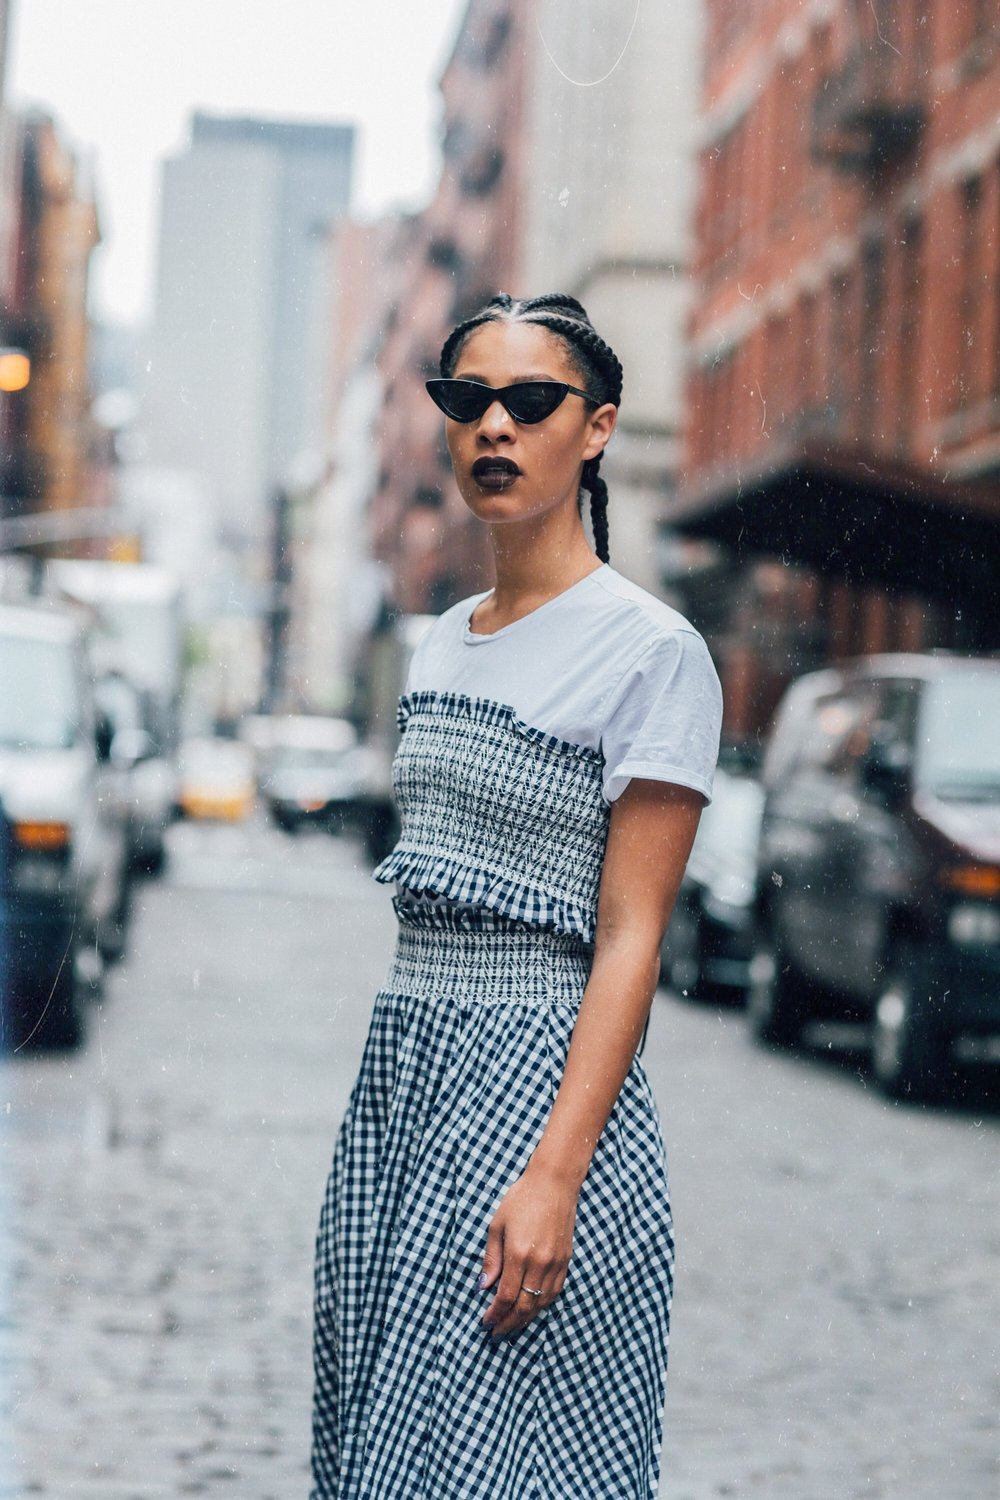 Claire Leana Millar in Soho wearing a full gighim outfit + Adam Selman & Le Specs